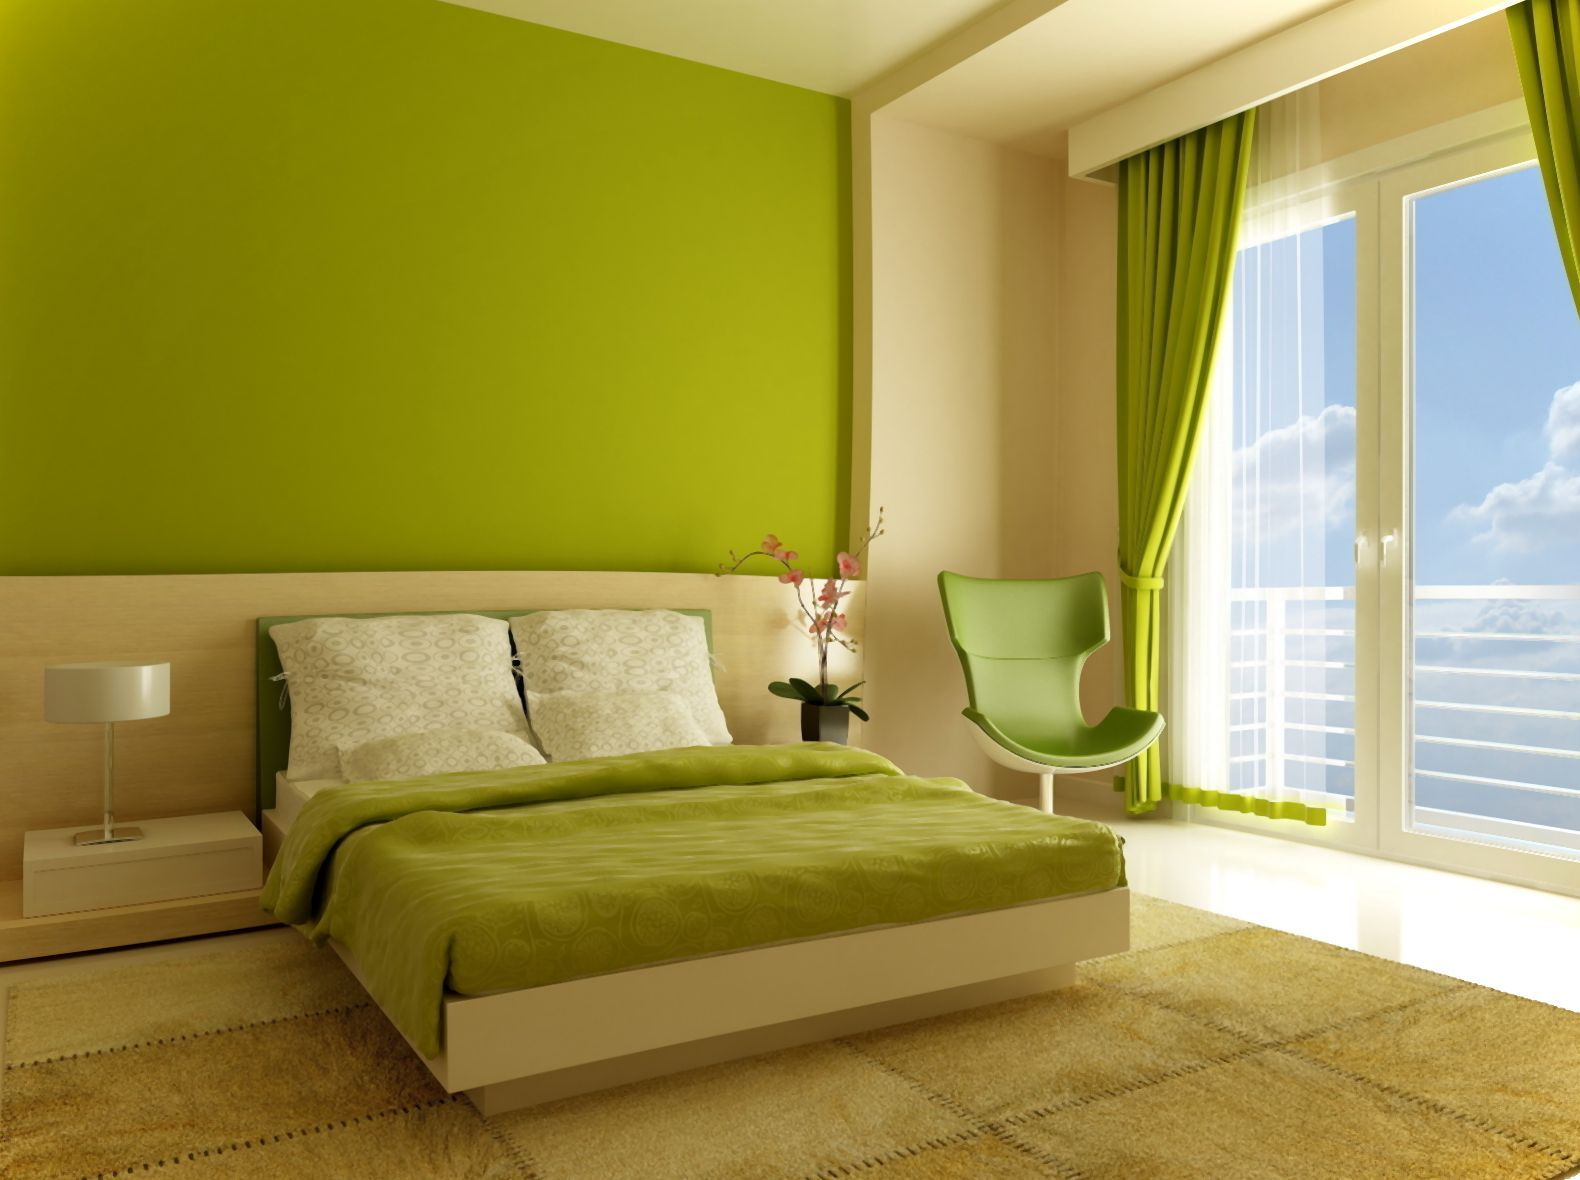 Green Bedroom Color Schemes bedroom colors green color schemes for bedrooms to decor